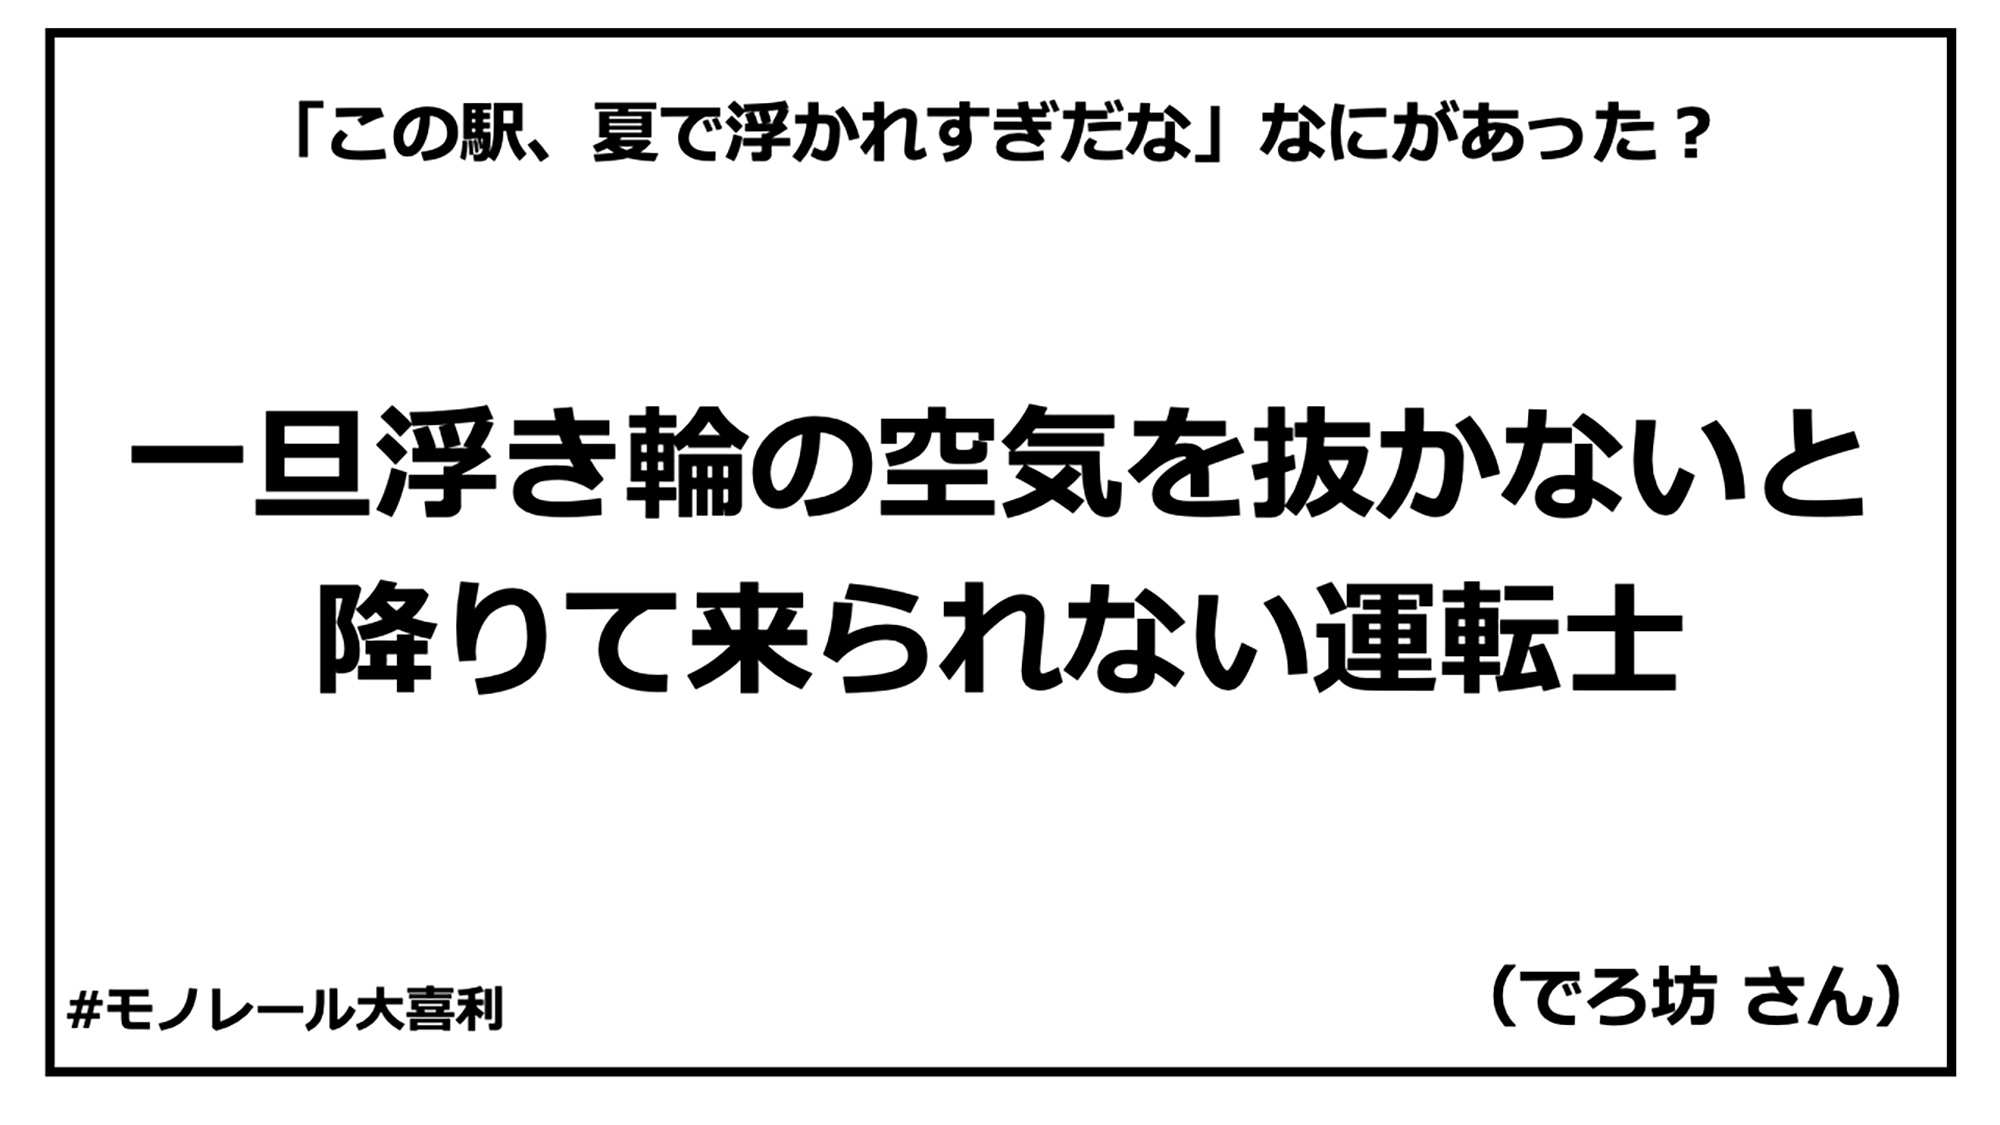 ogiri_answer_26_8.jpg